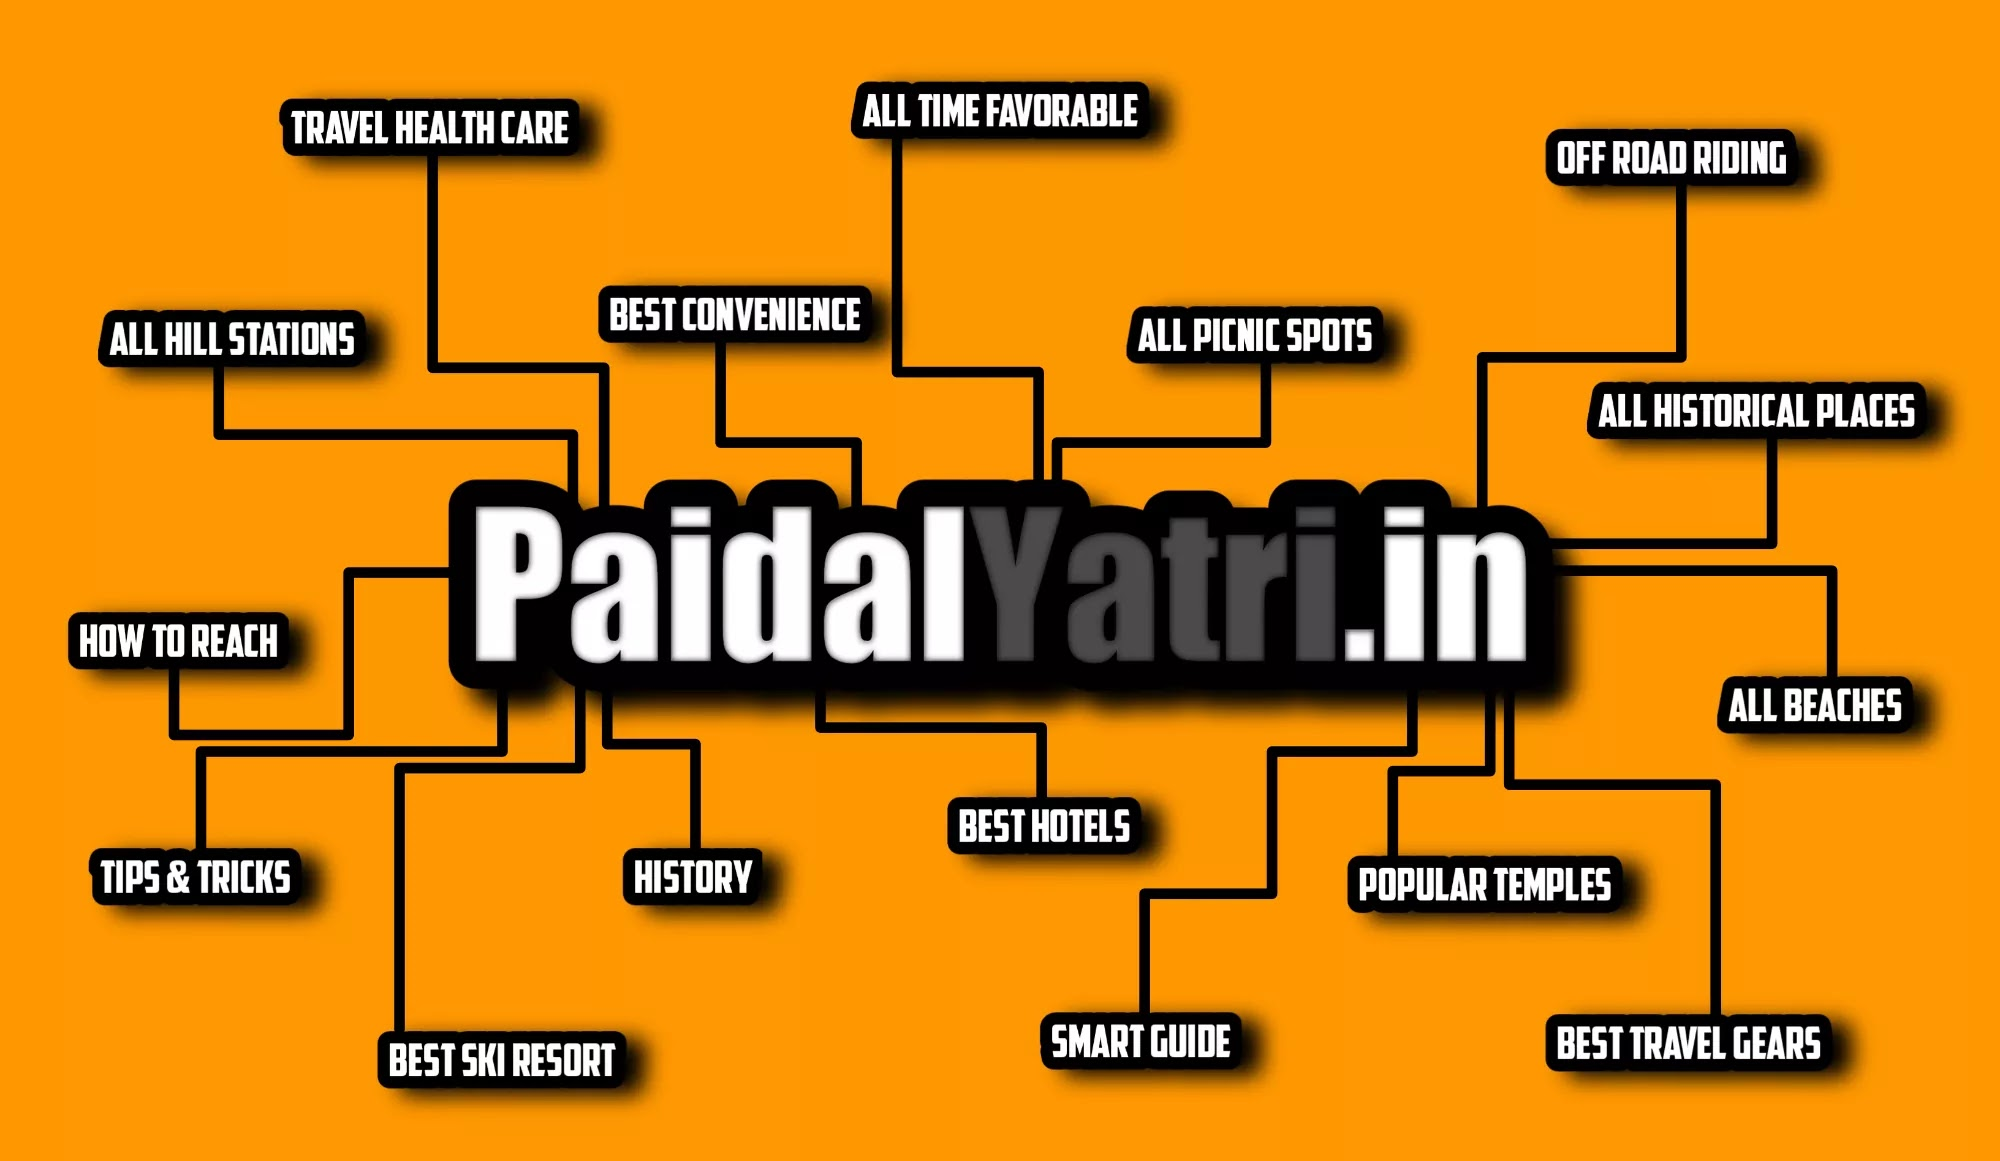 paidalyatri.in discussion page